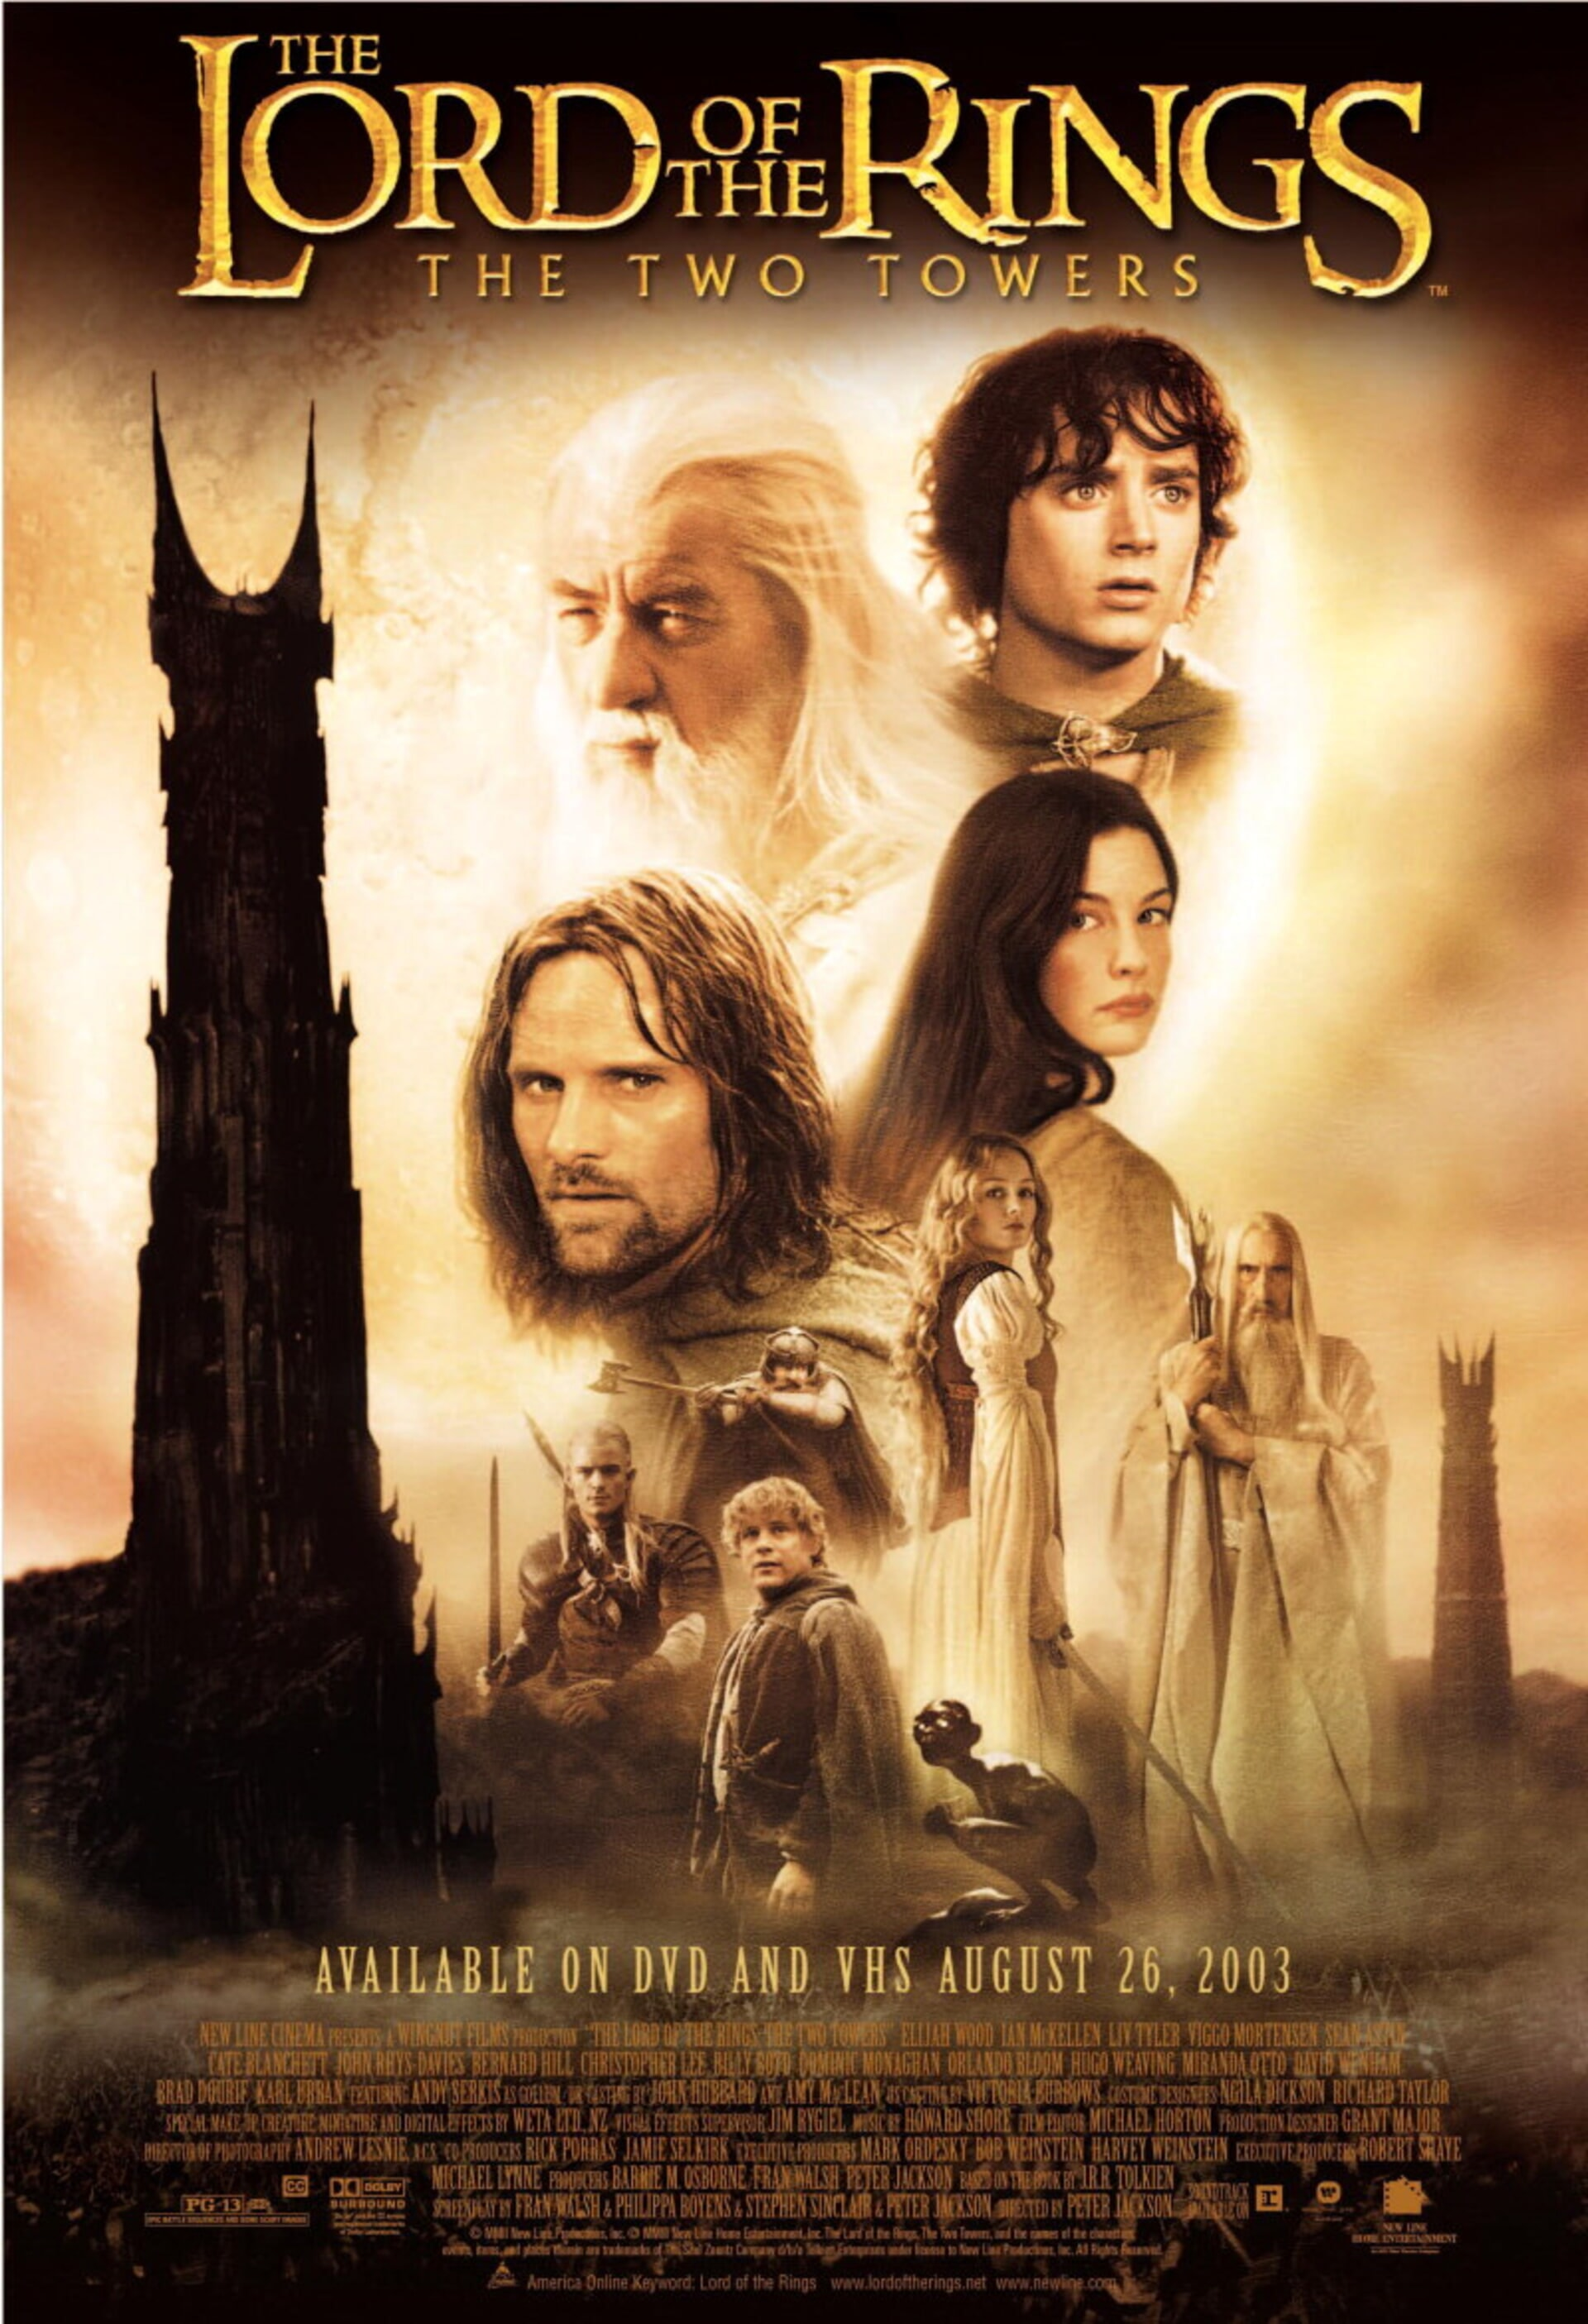 The Lord of the Rings: The Two Towers - Poster 2